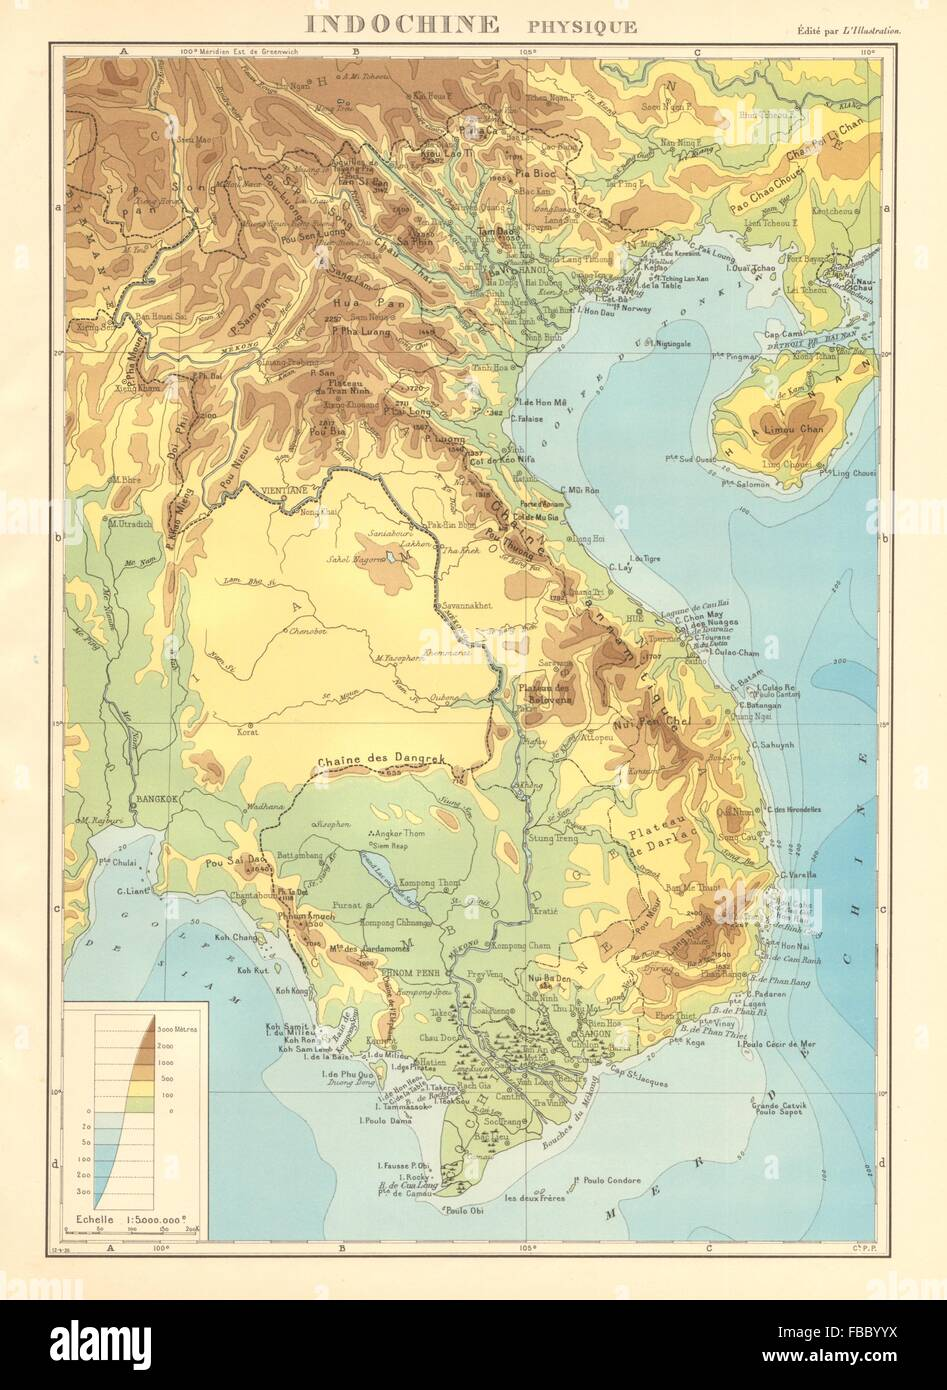 French Indochina Map Stock Photos & French Indochina Map ... on sumatra map, taiwan map, manchuria map, south america map, malay peninsula map, cambodia map, vietnam map, indonesia map, malay archipelago map, west africa map, irrawaddy river map, philippines map, ottoman empire map, indian ocean map, world map, china map, burma map, java map, thailand map, asia map,